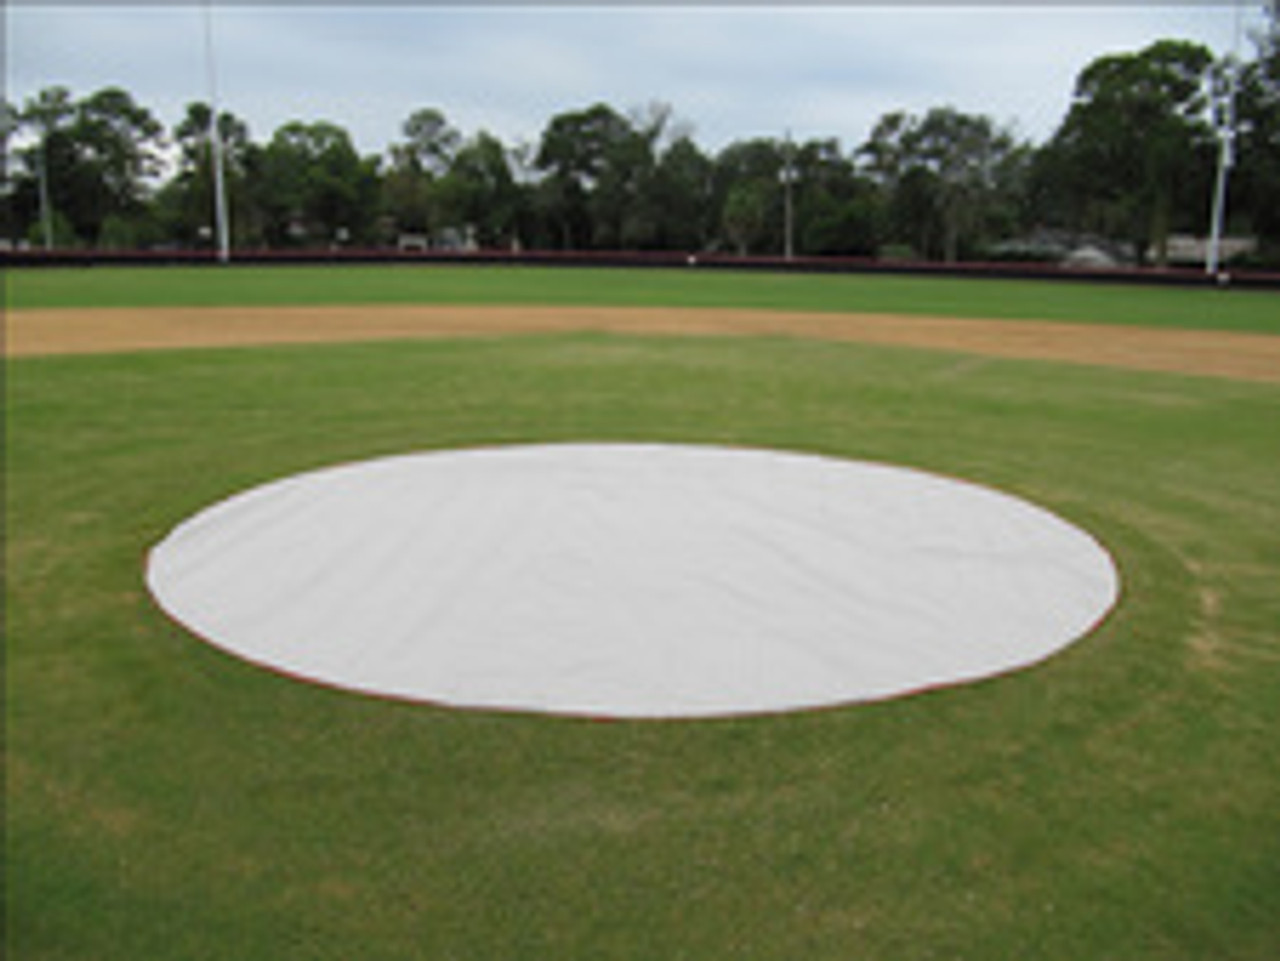 Weighted 6 oz. College and Pro Kit Mound and Base Protectors - Baseball Field Covers